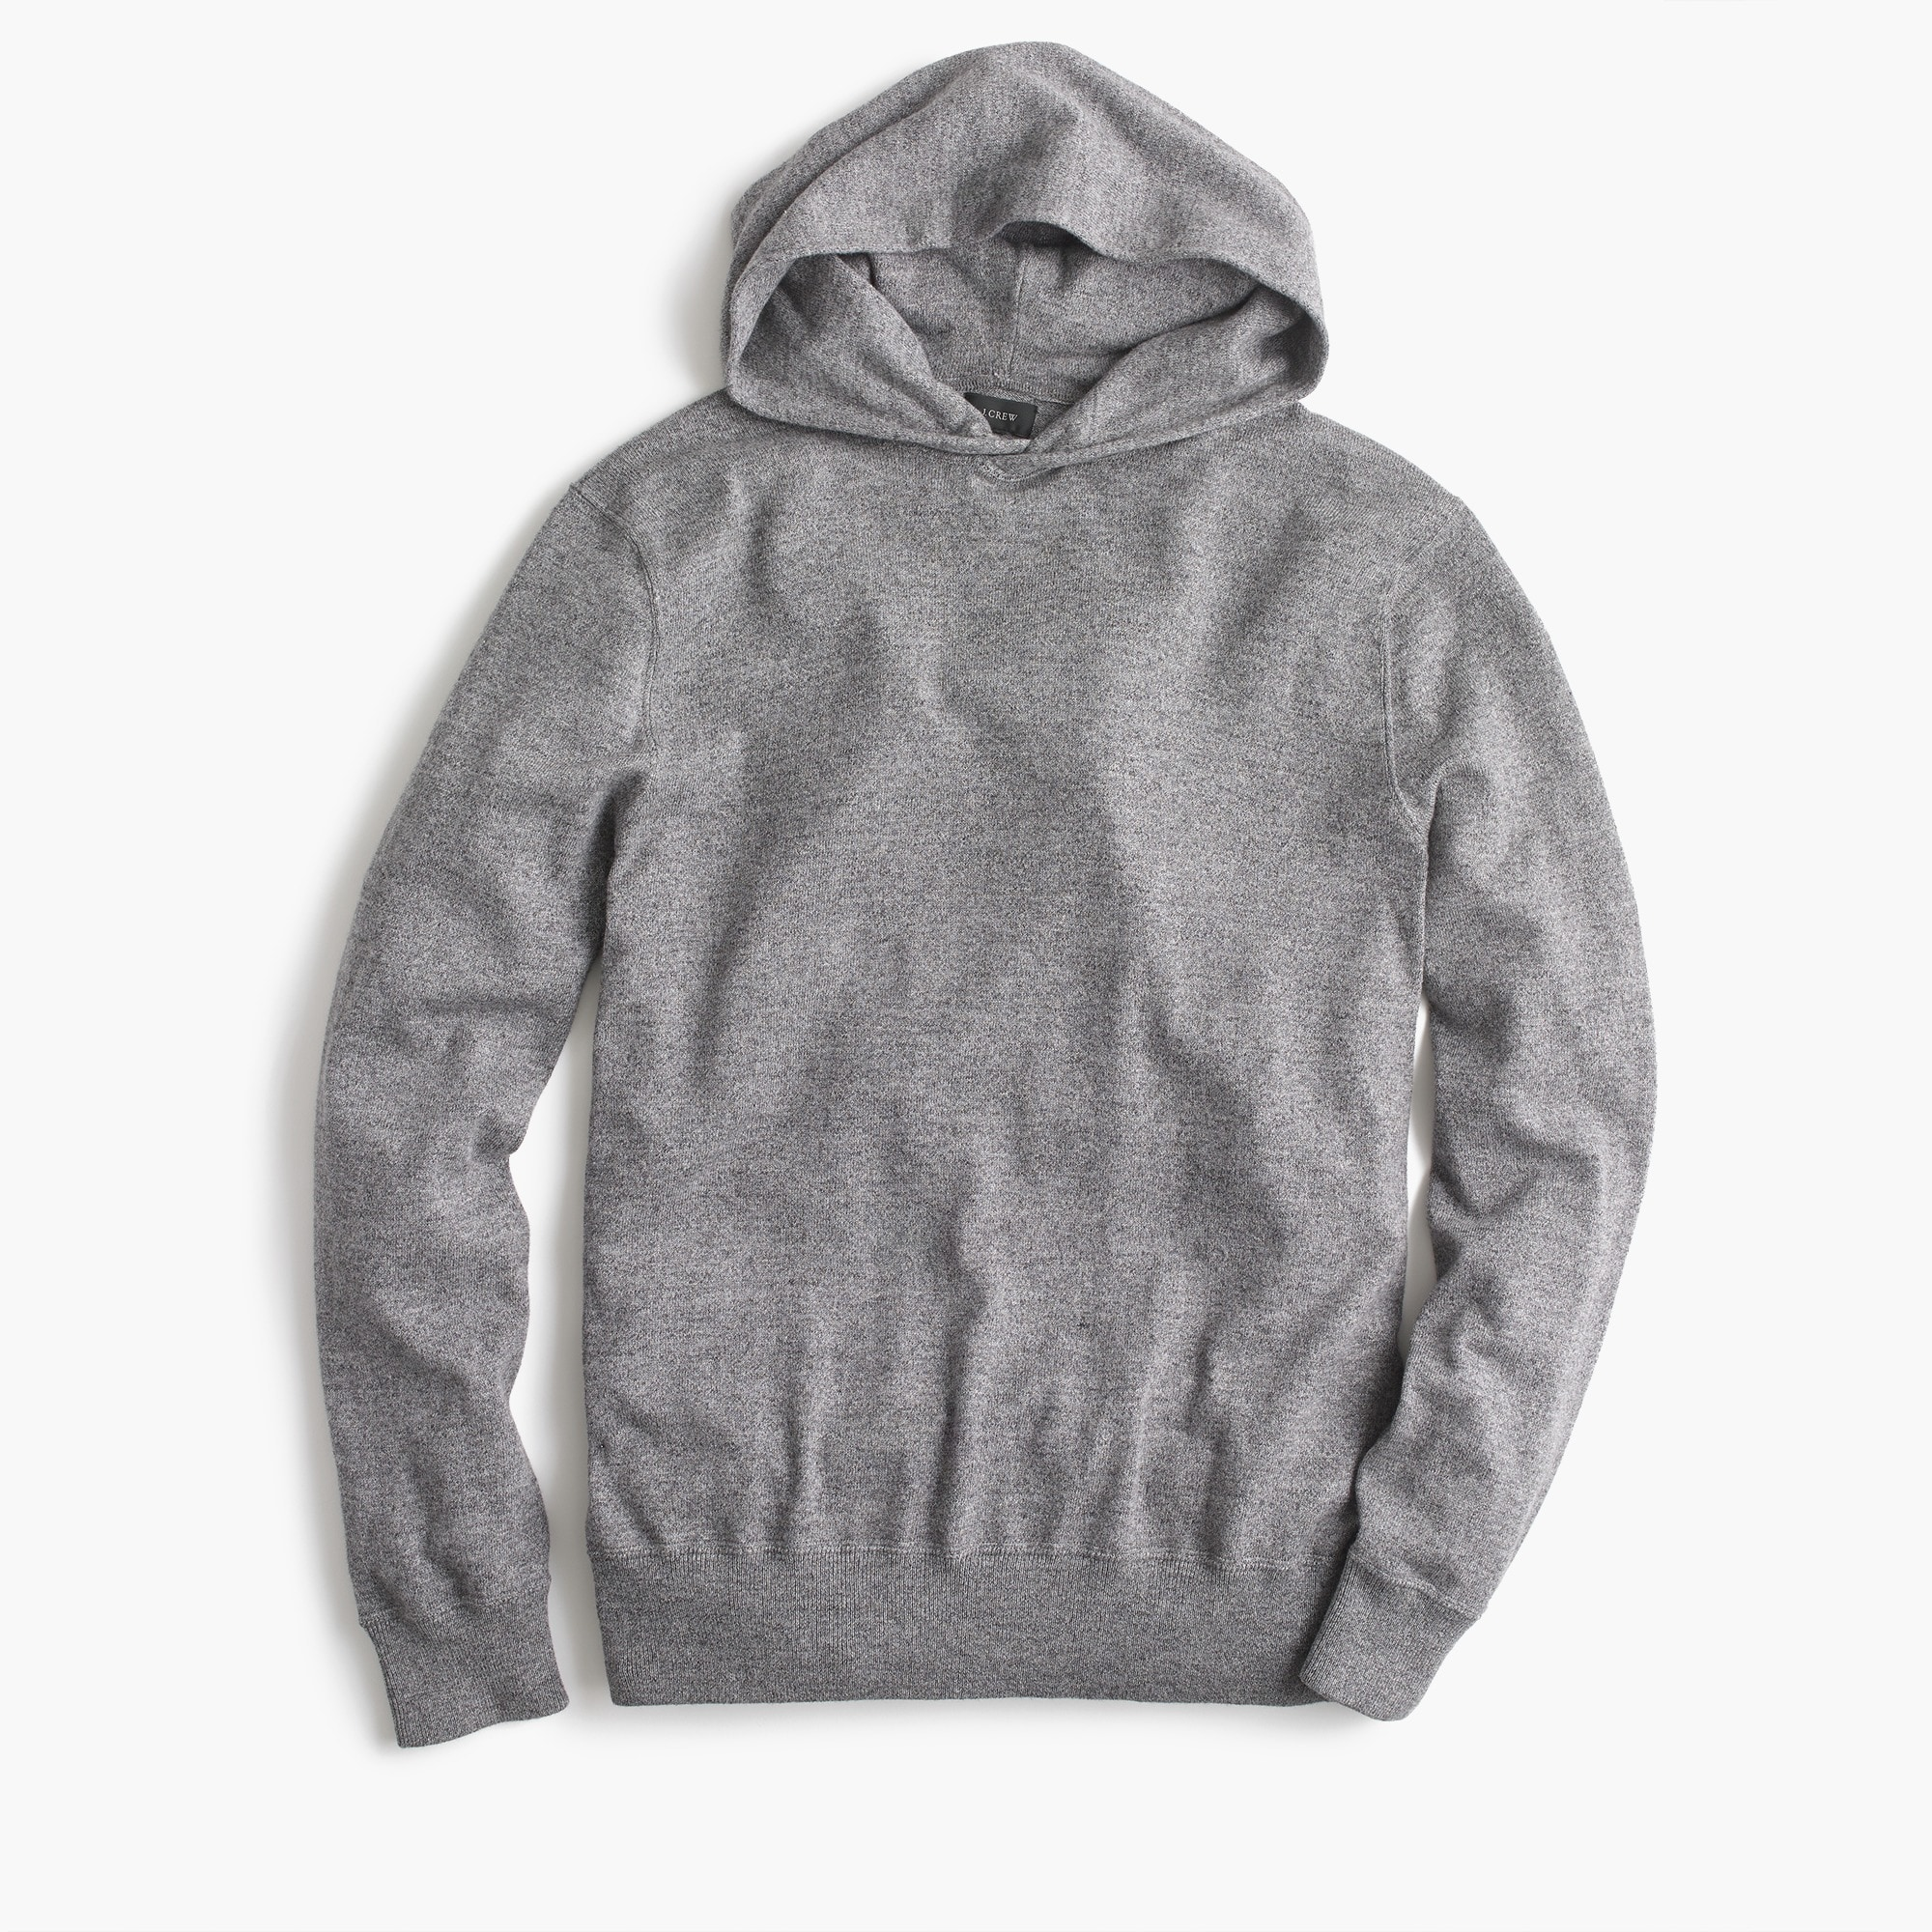 Image 3 for Cotton pullover hoodie in grey